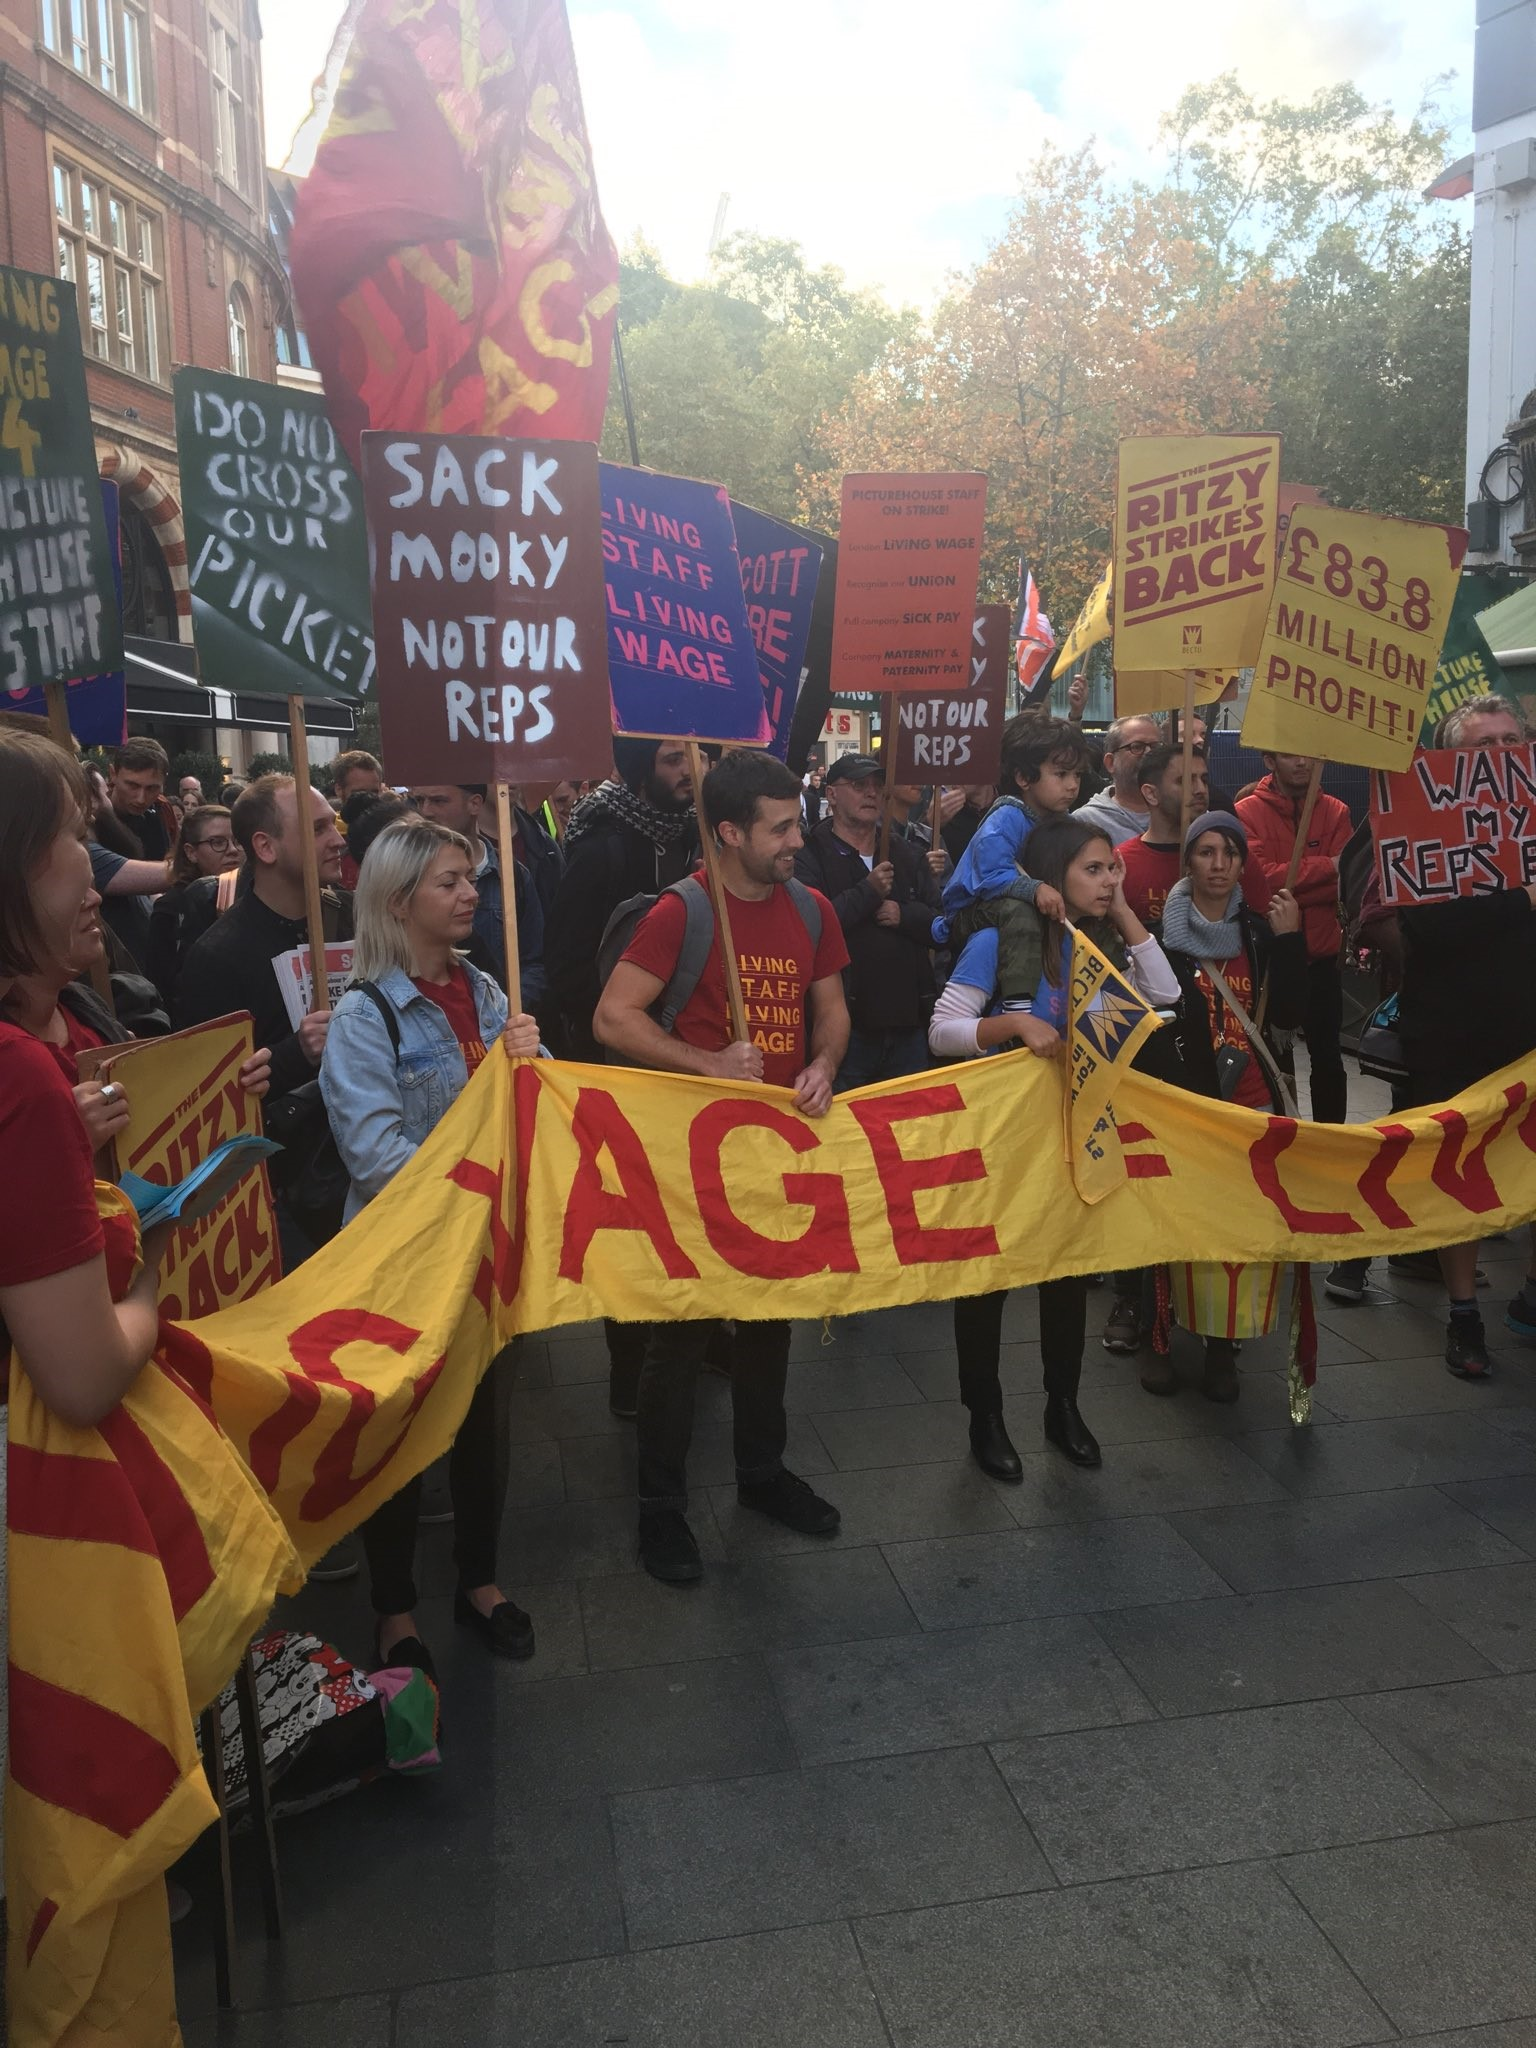 Protesters waving banners at the London event.